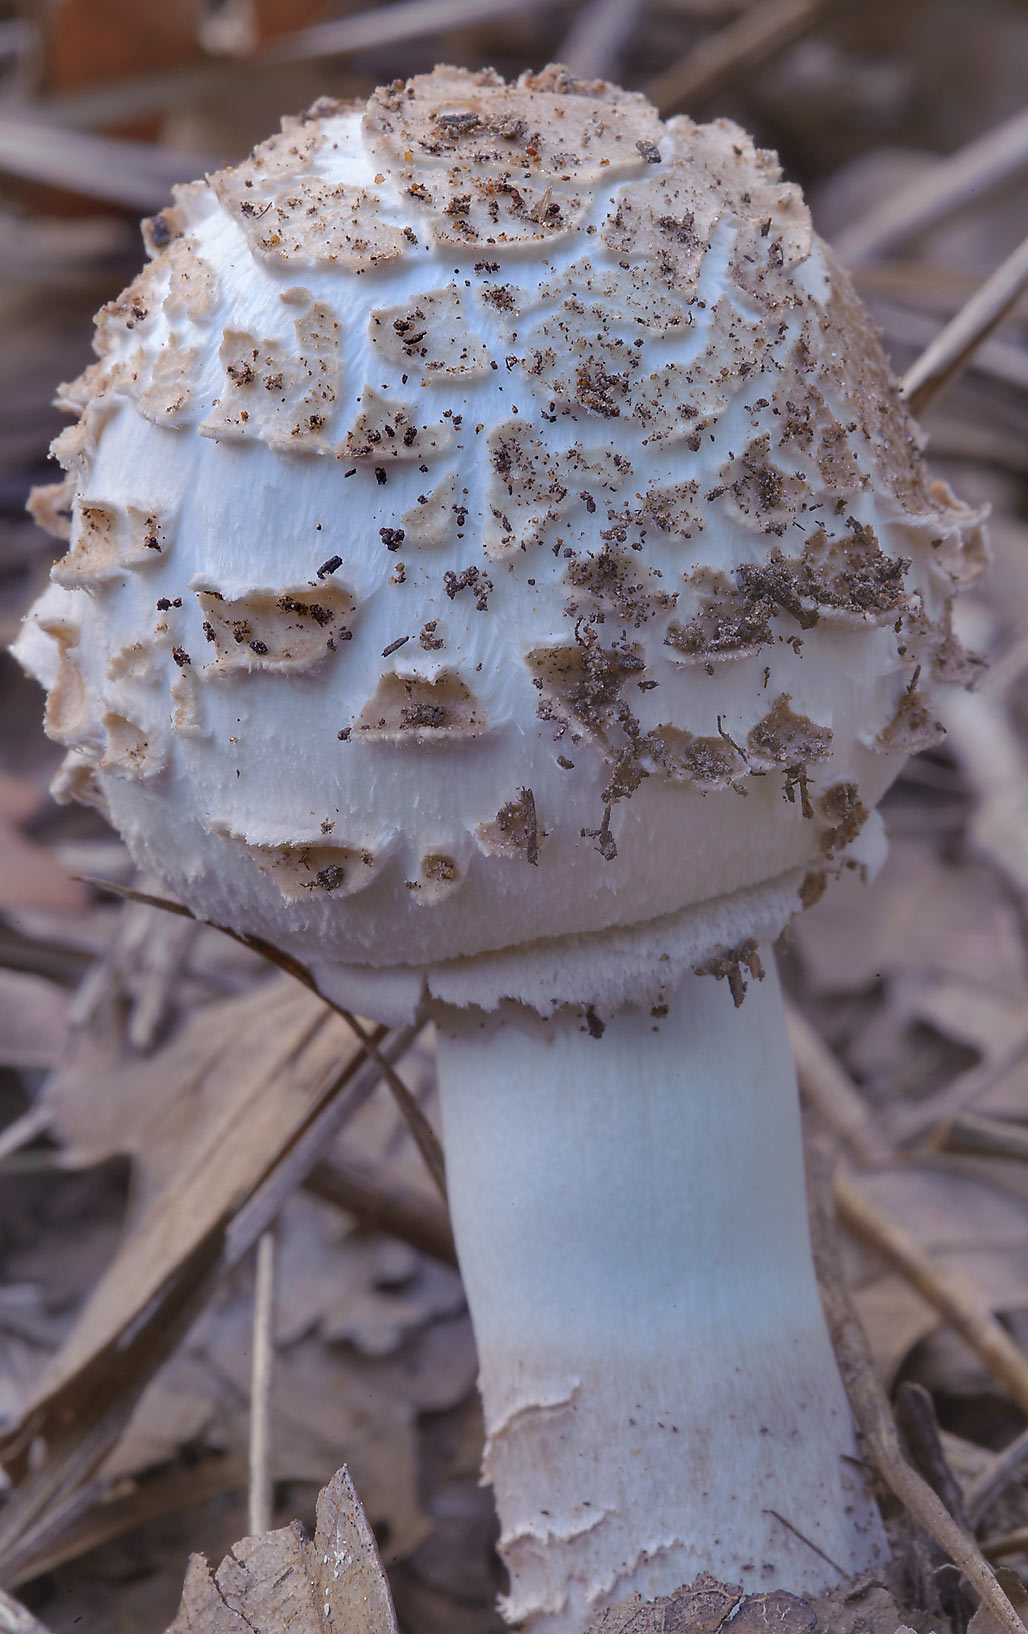 Amanita mushroom in Lick Creek Park. College Station, Texas